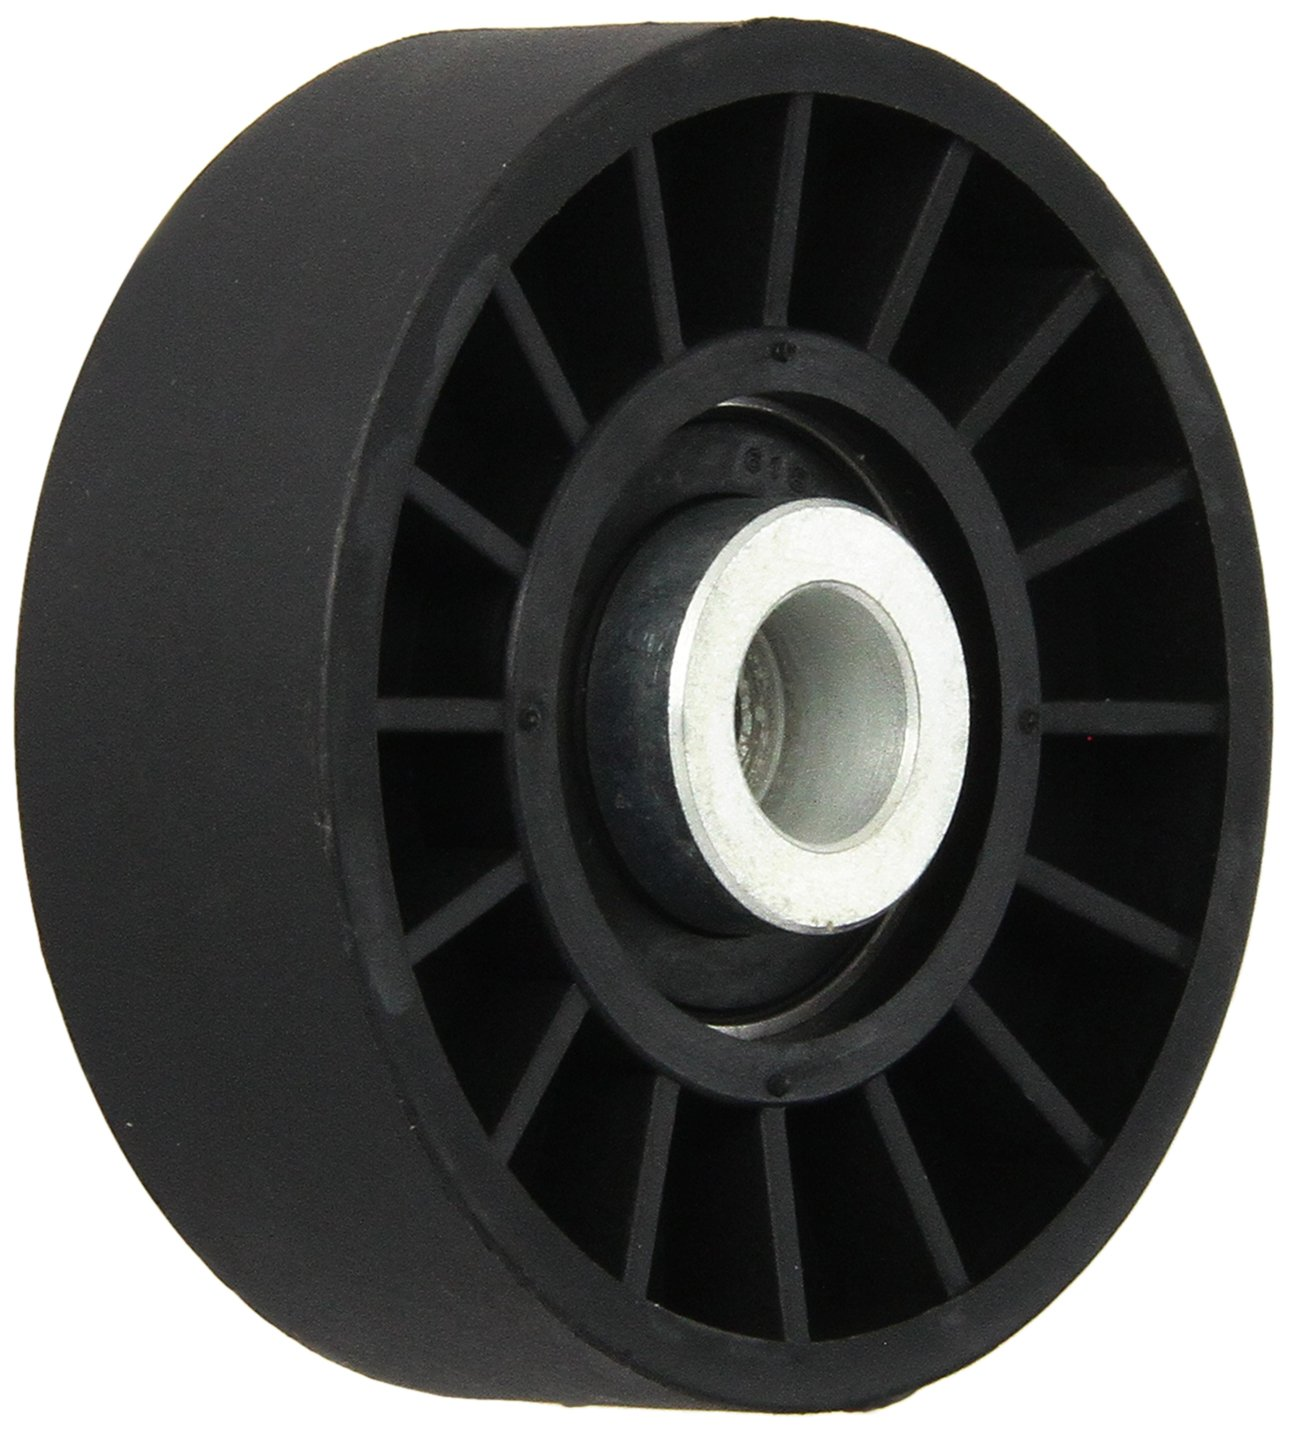 Dayco 89044 Drive Belt Idler Pulley